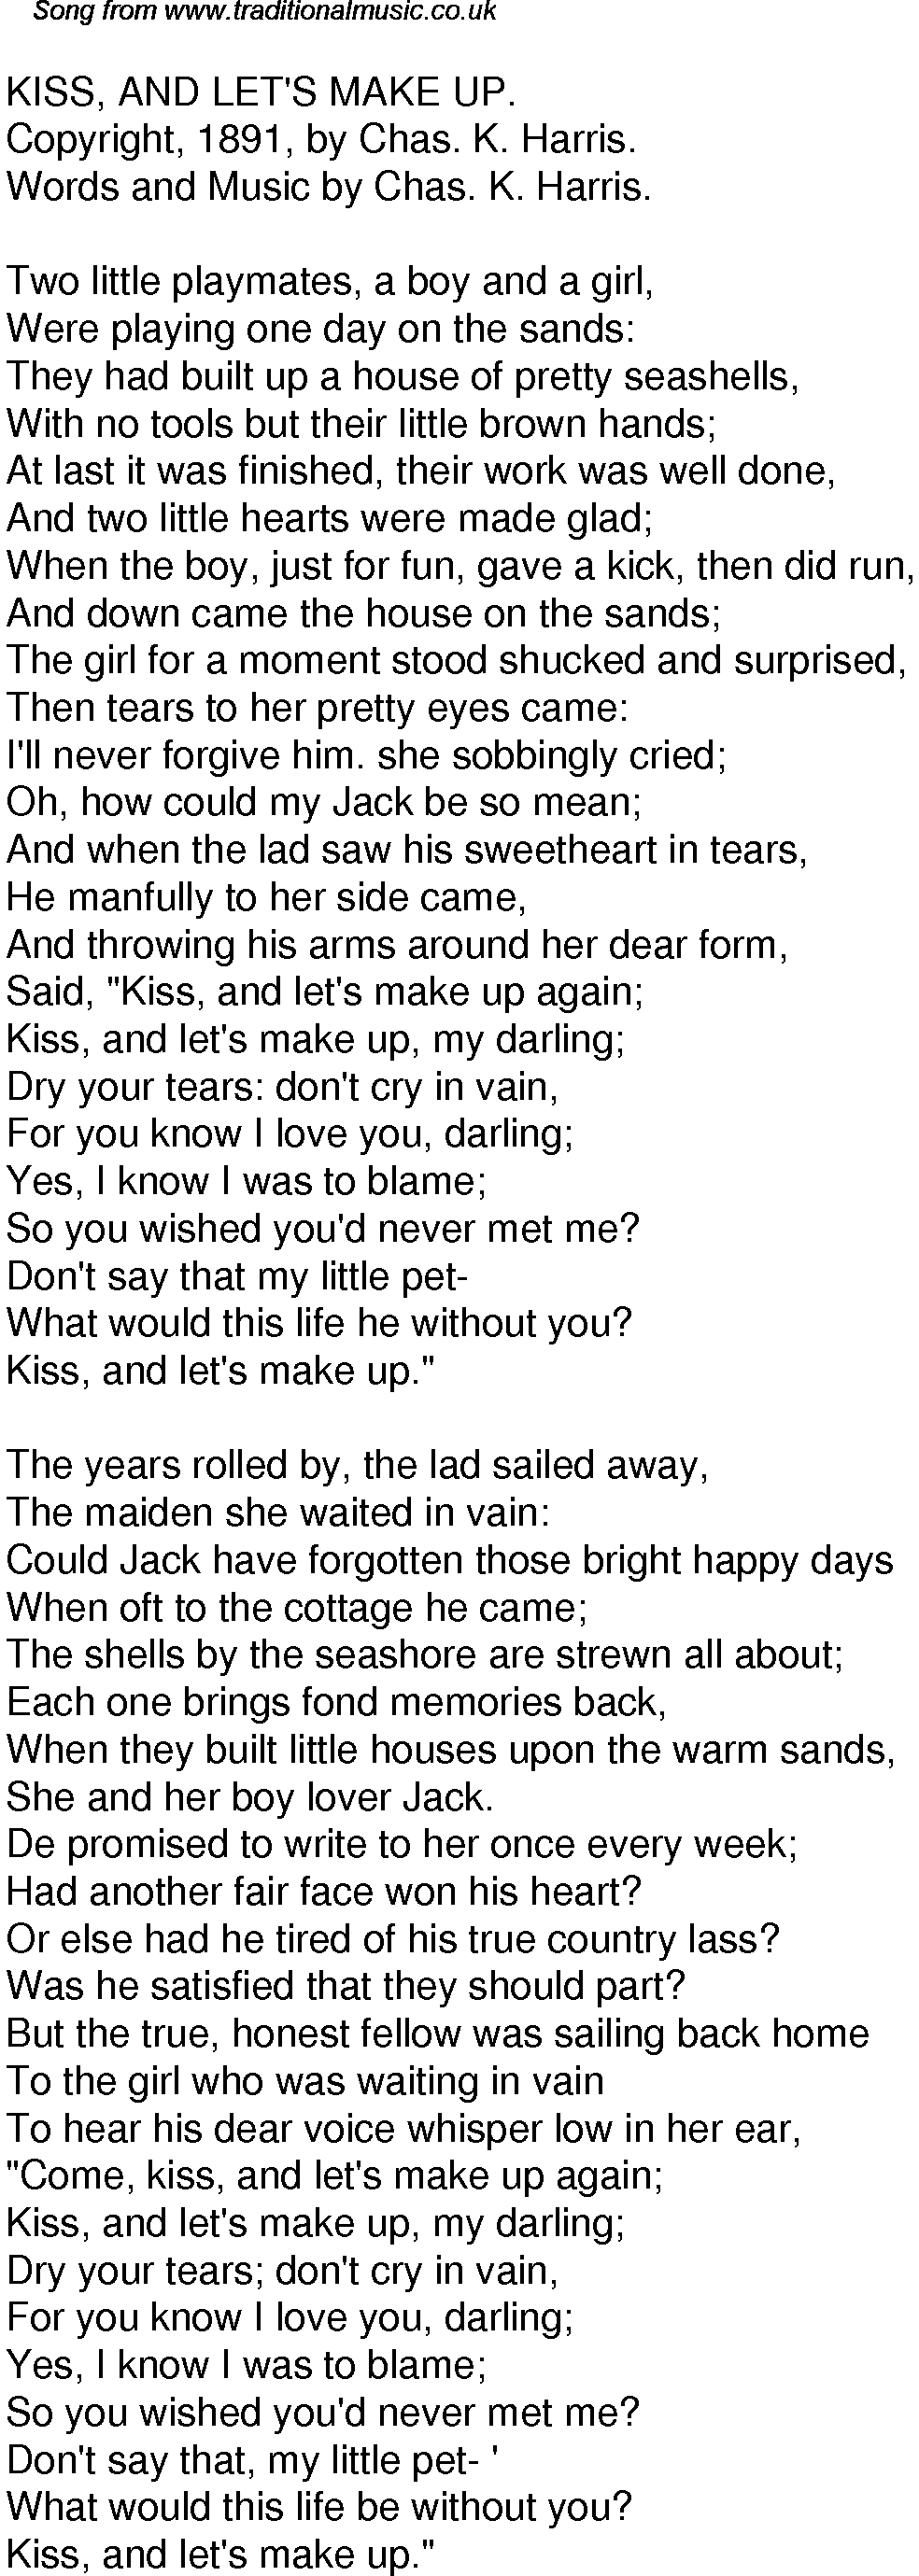 Old Time Song Lyrics for 39 Kiss And Lets Make Up